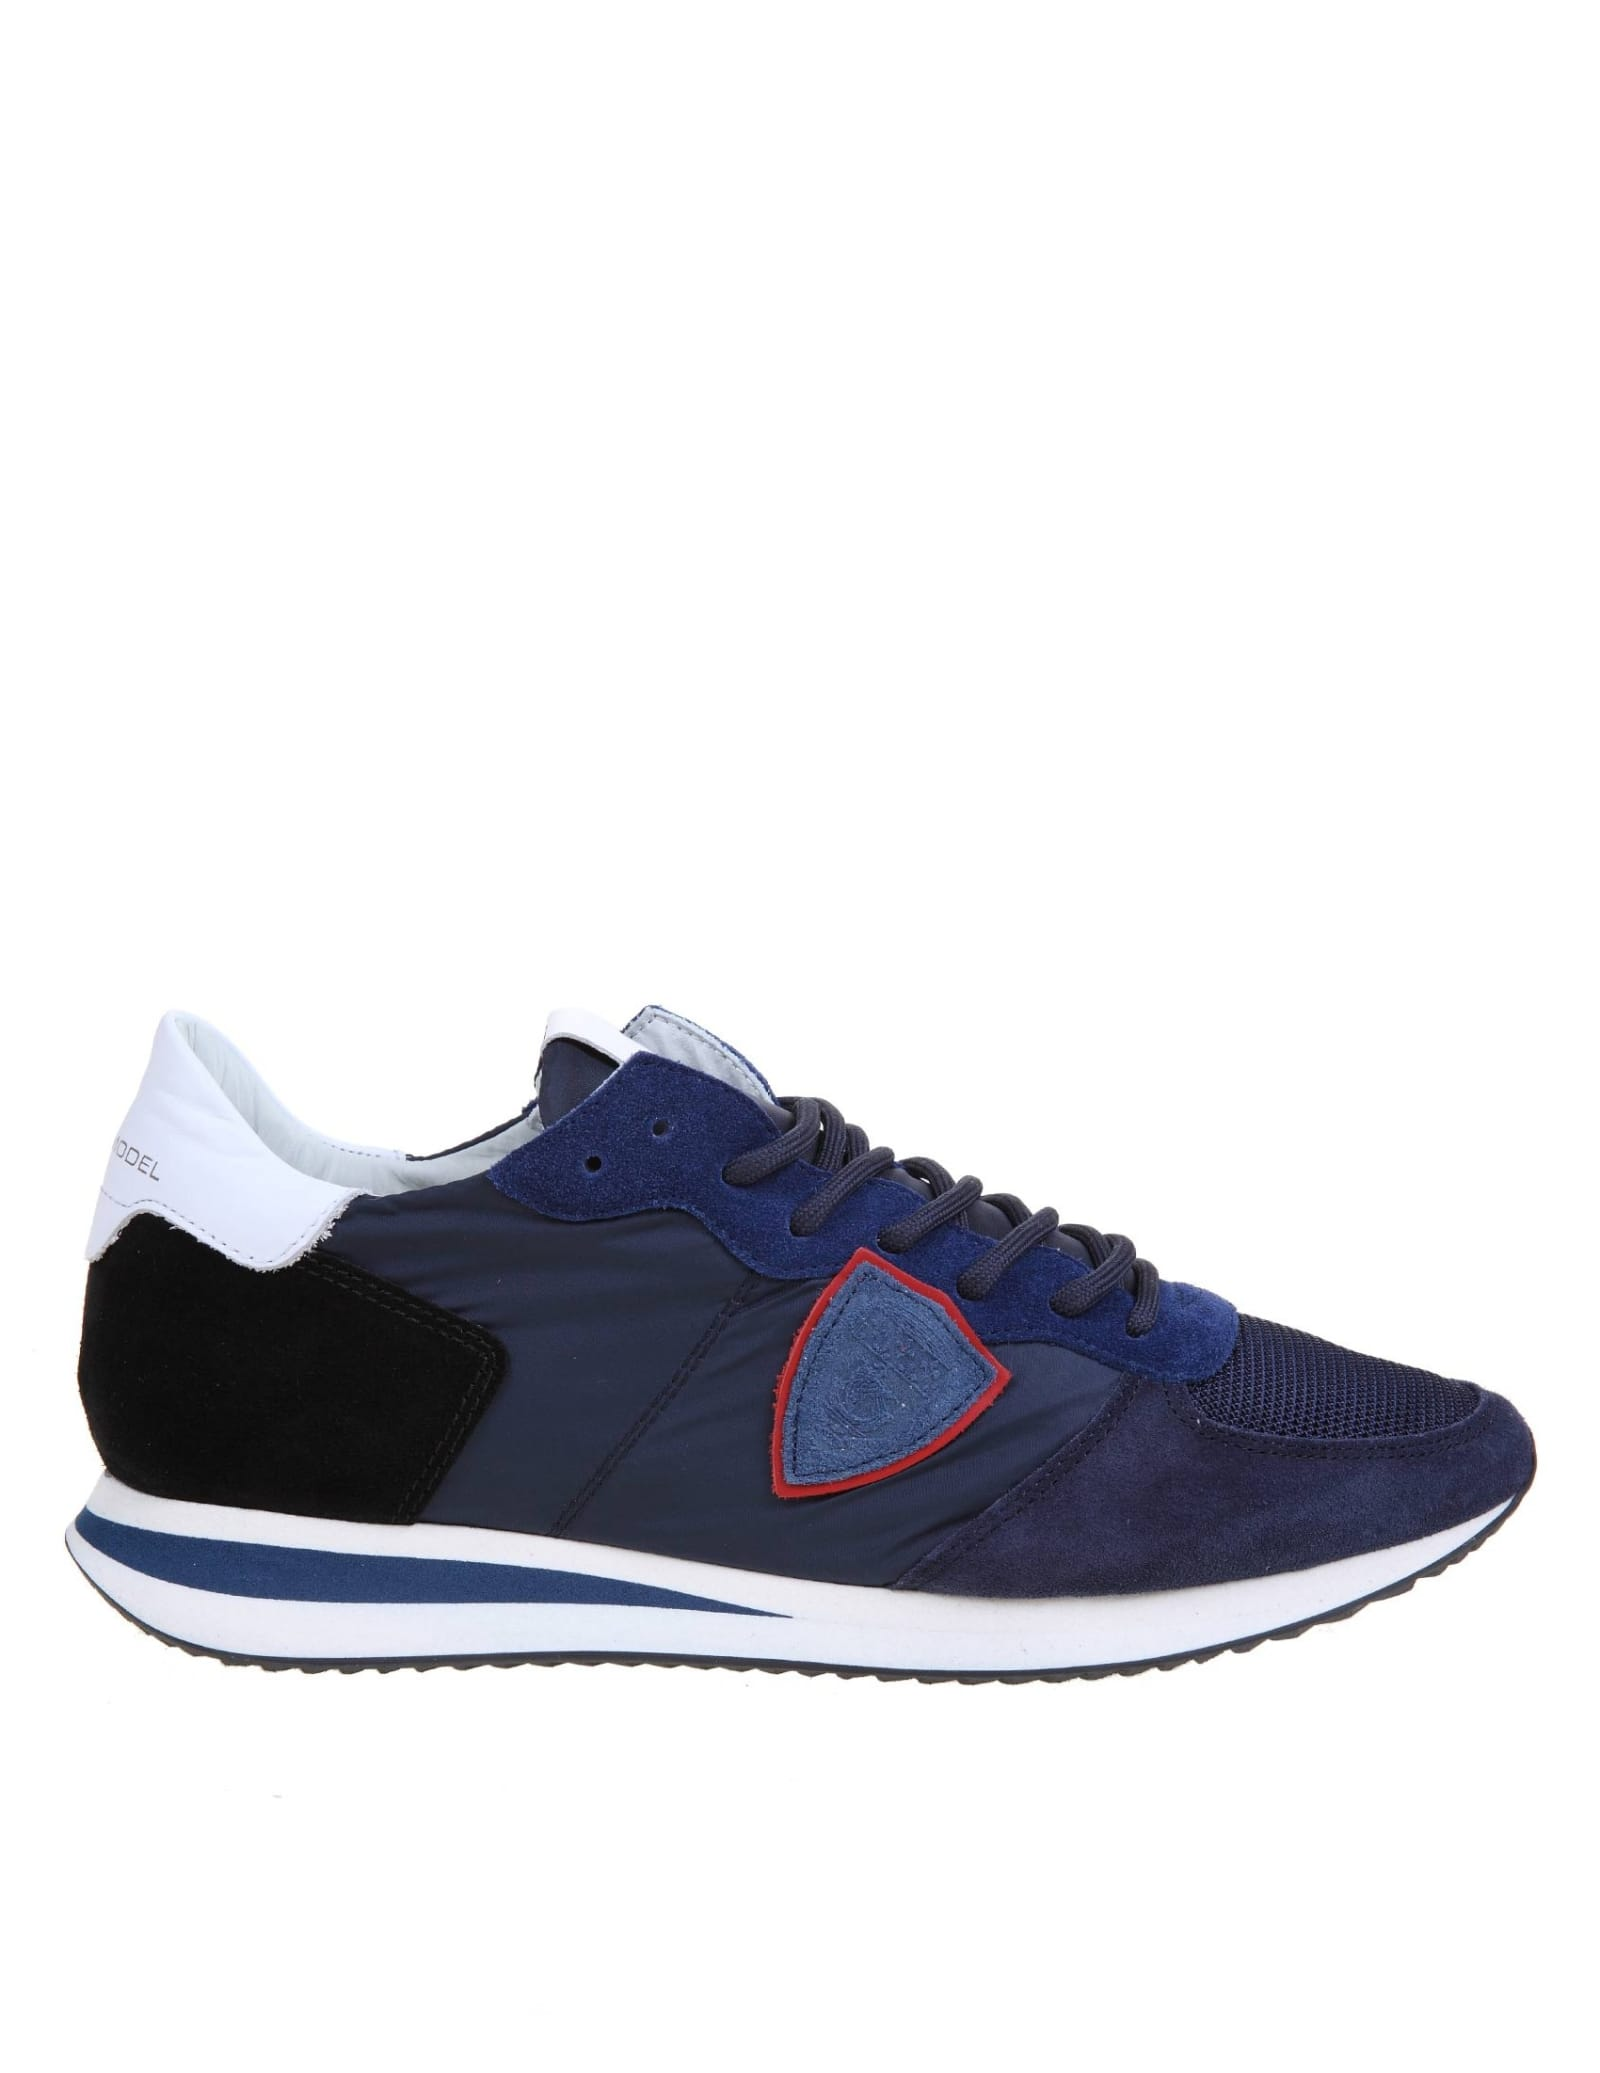 Philippe Model TRPX SNEAKERS IN SUEDE AND NYLON